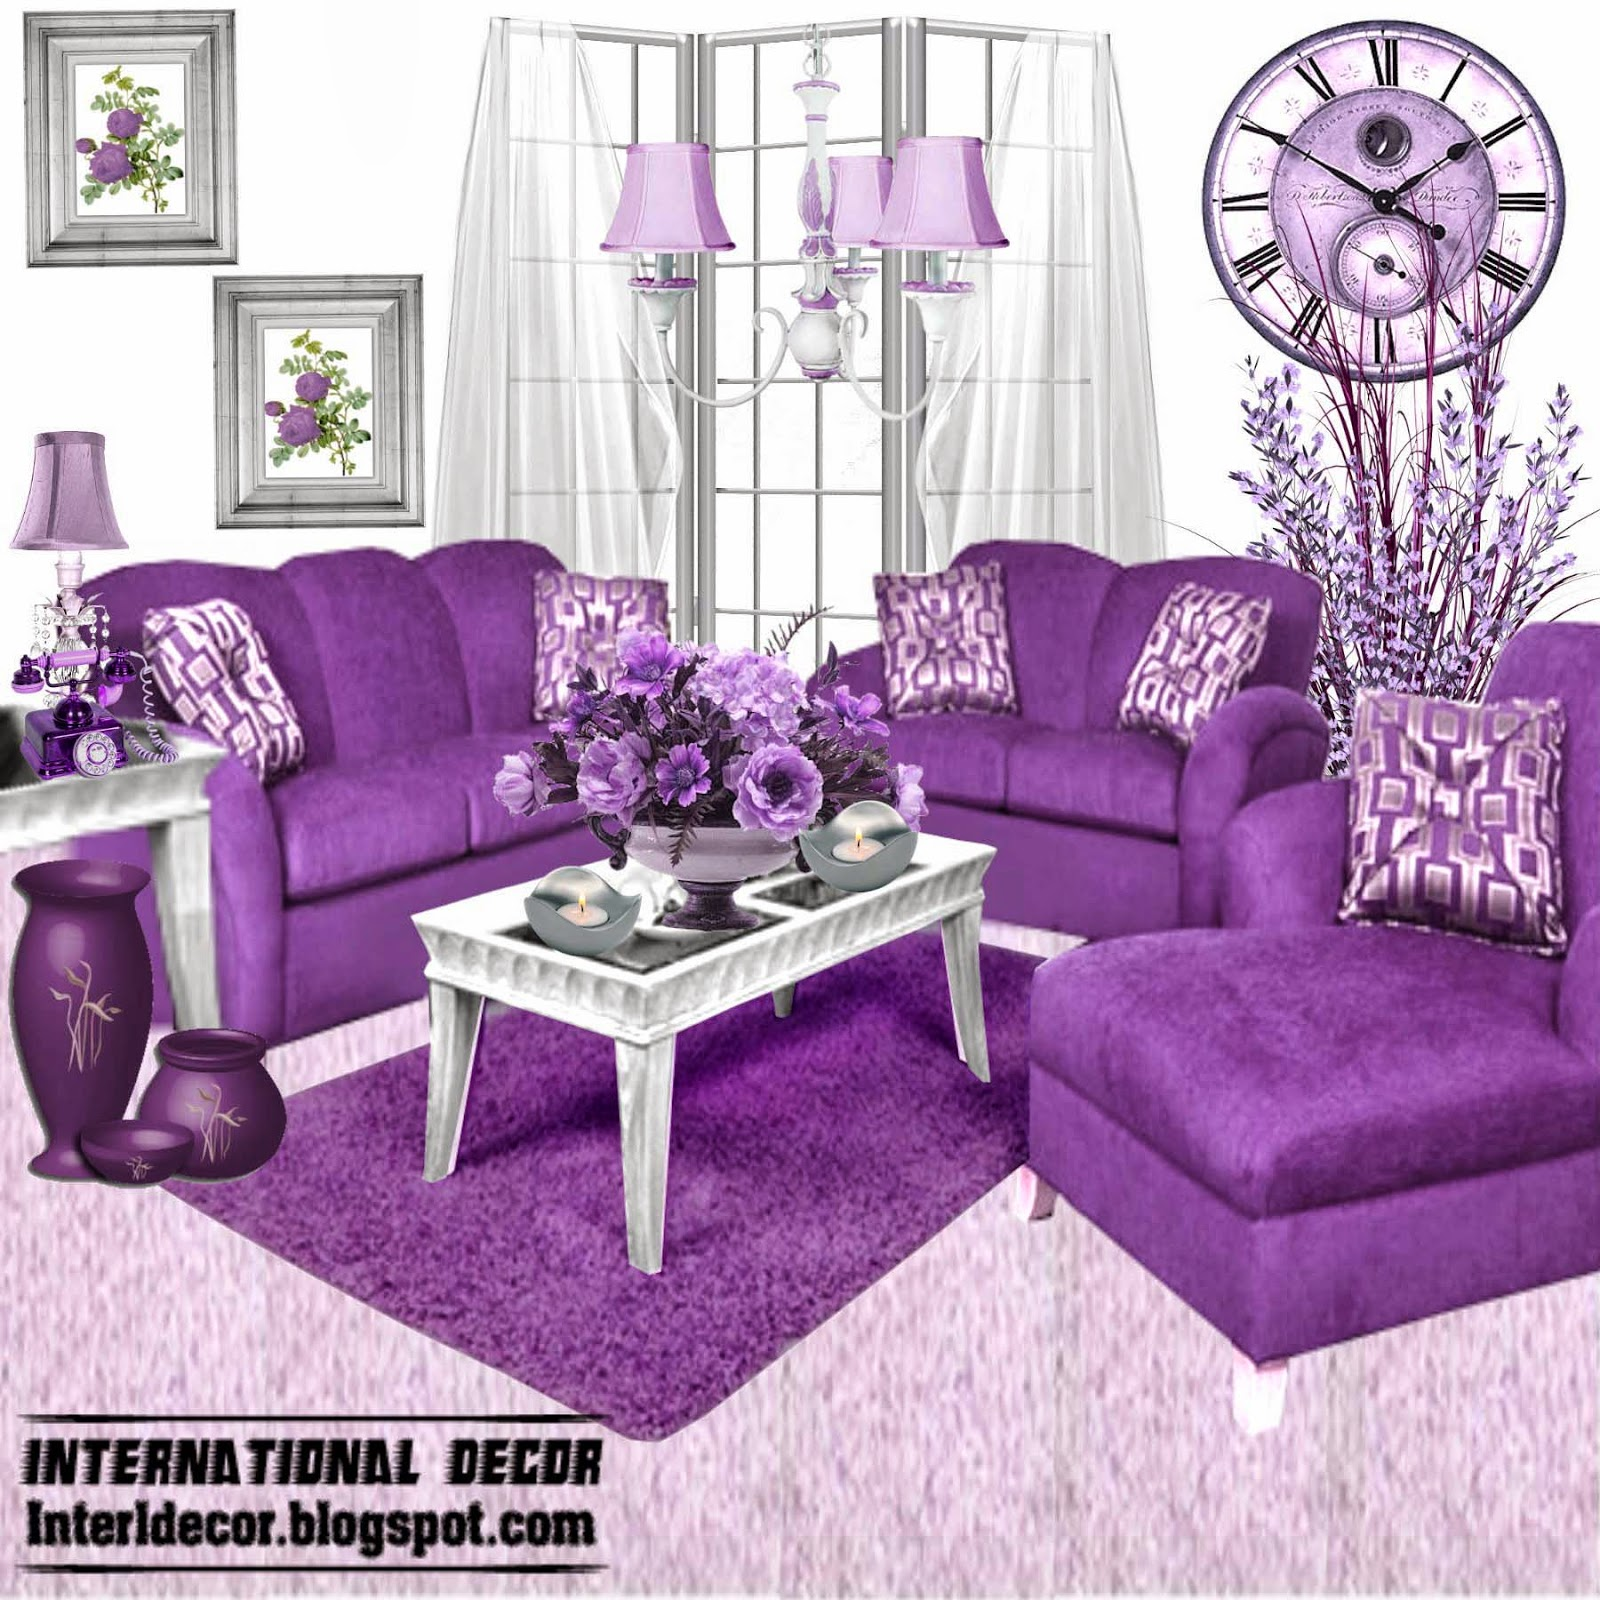 Luxury purple furniture sets sofas chairs for living Pics of living room sets